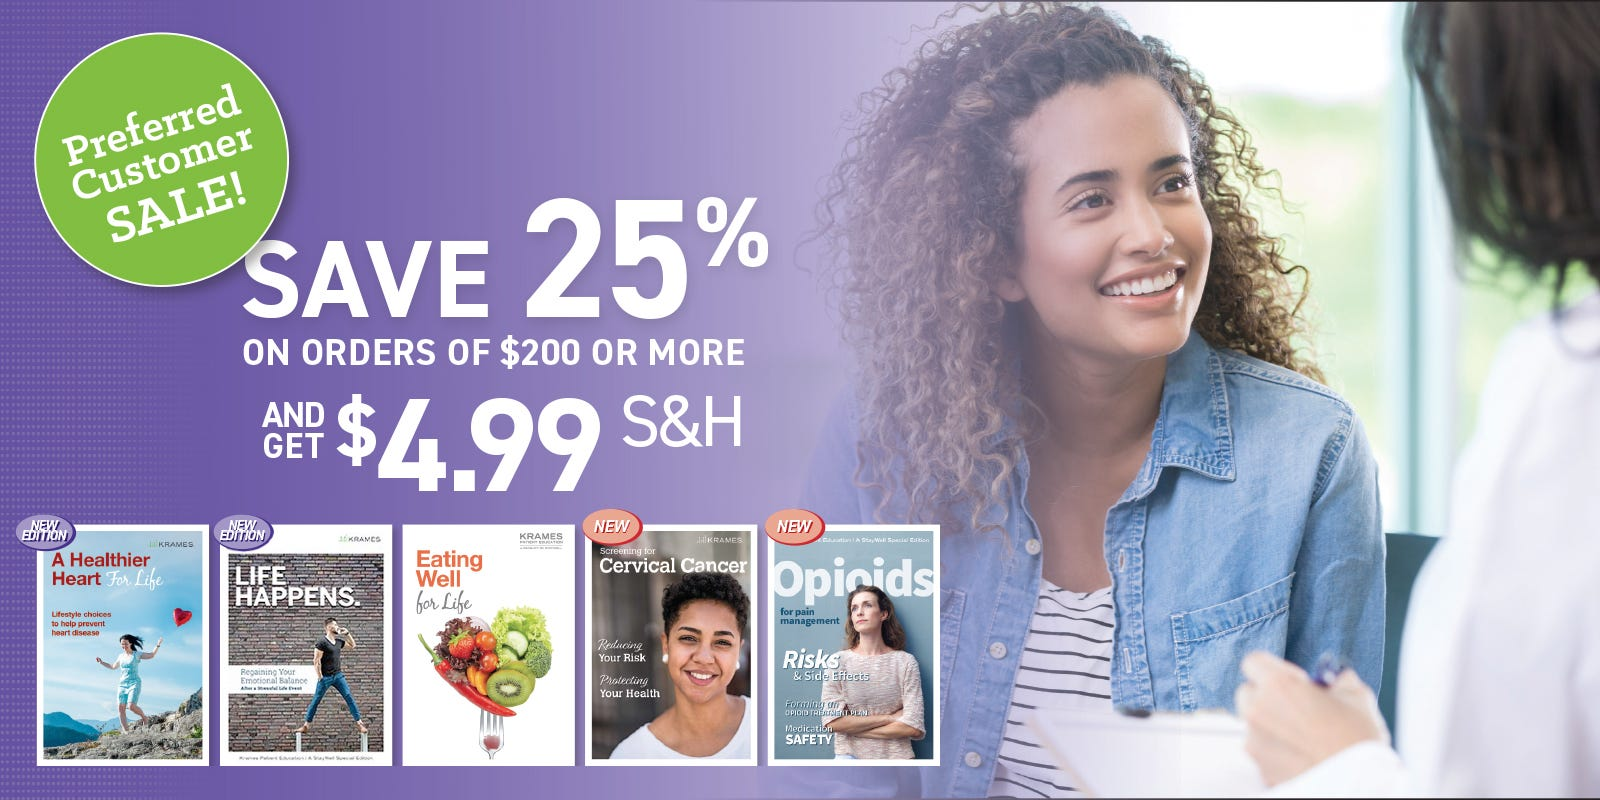 Preferred Customer Sale! Save 25% on orders of $200 or more and get $4.99 S&H